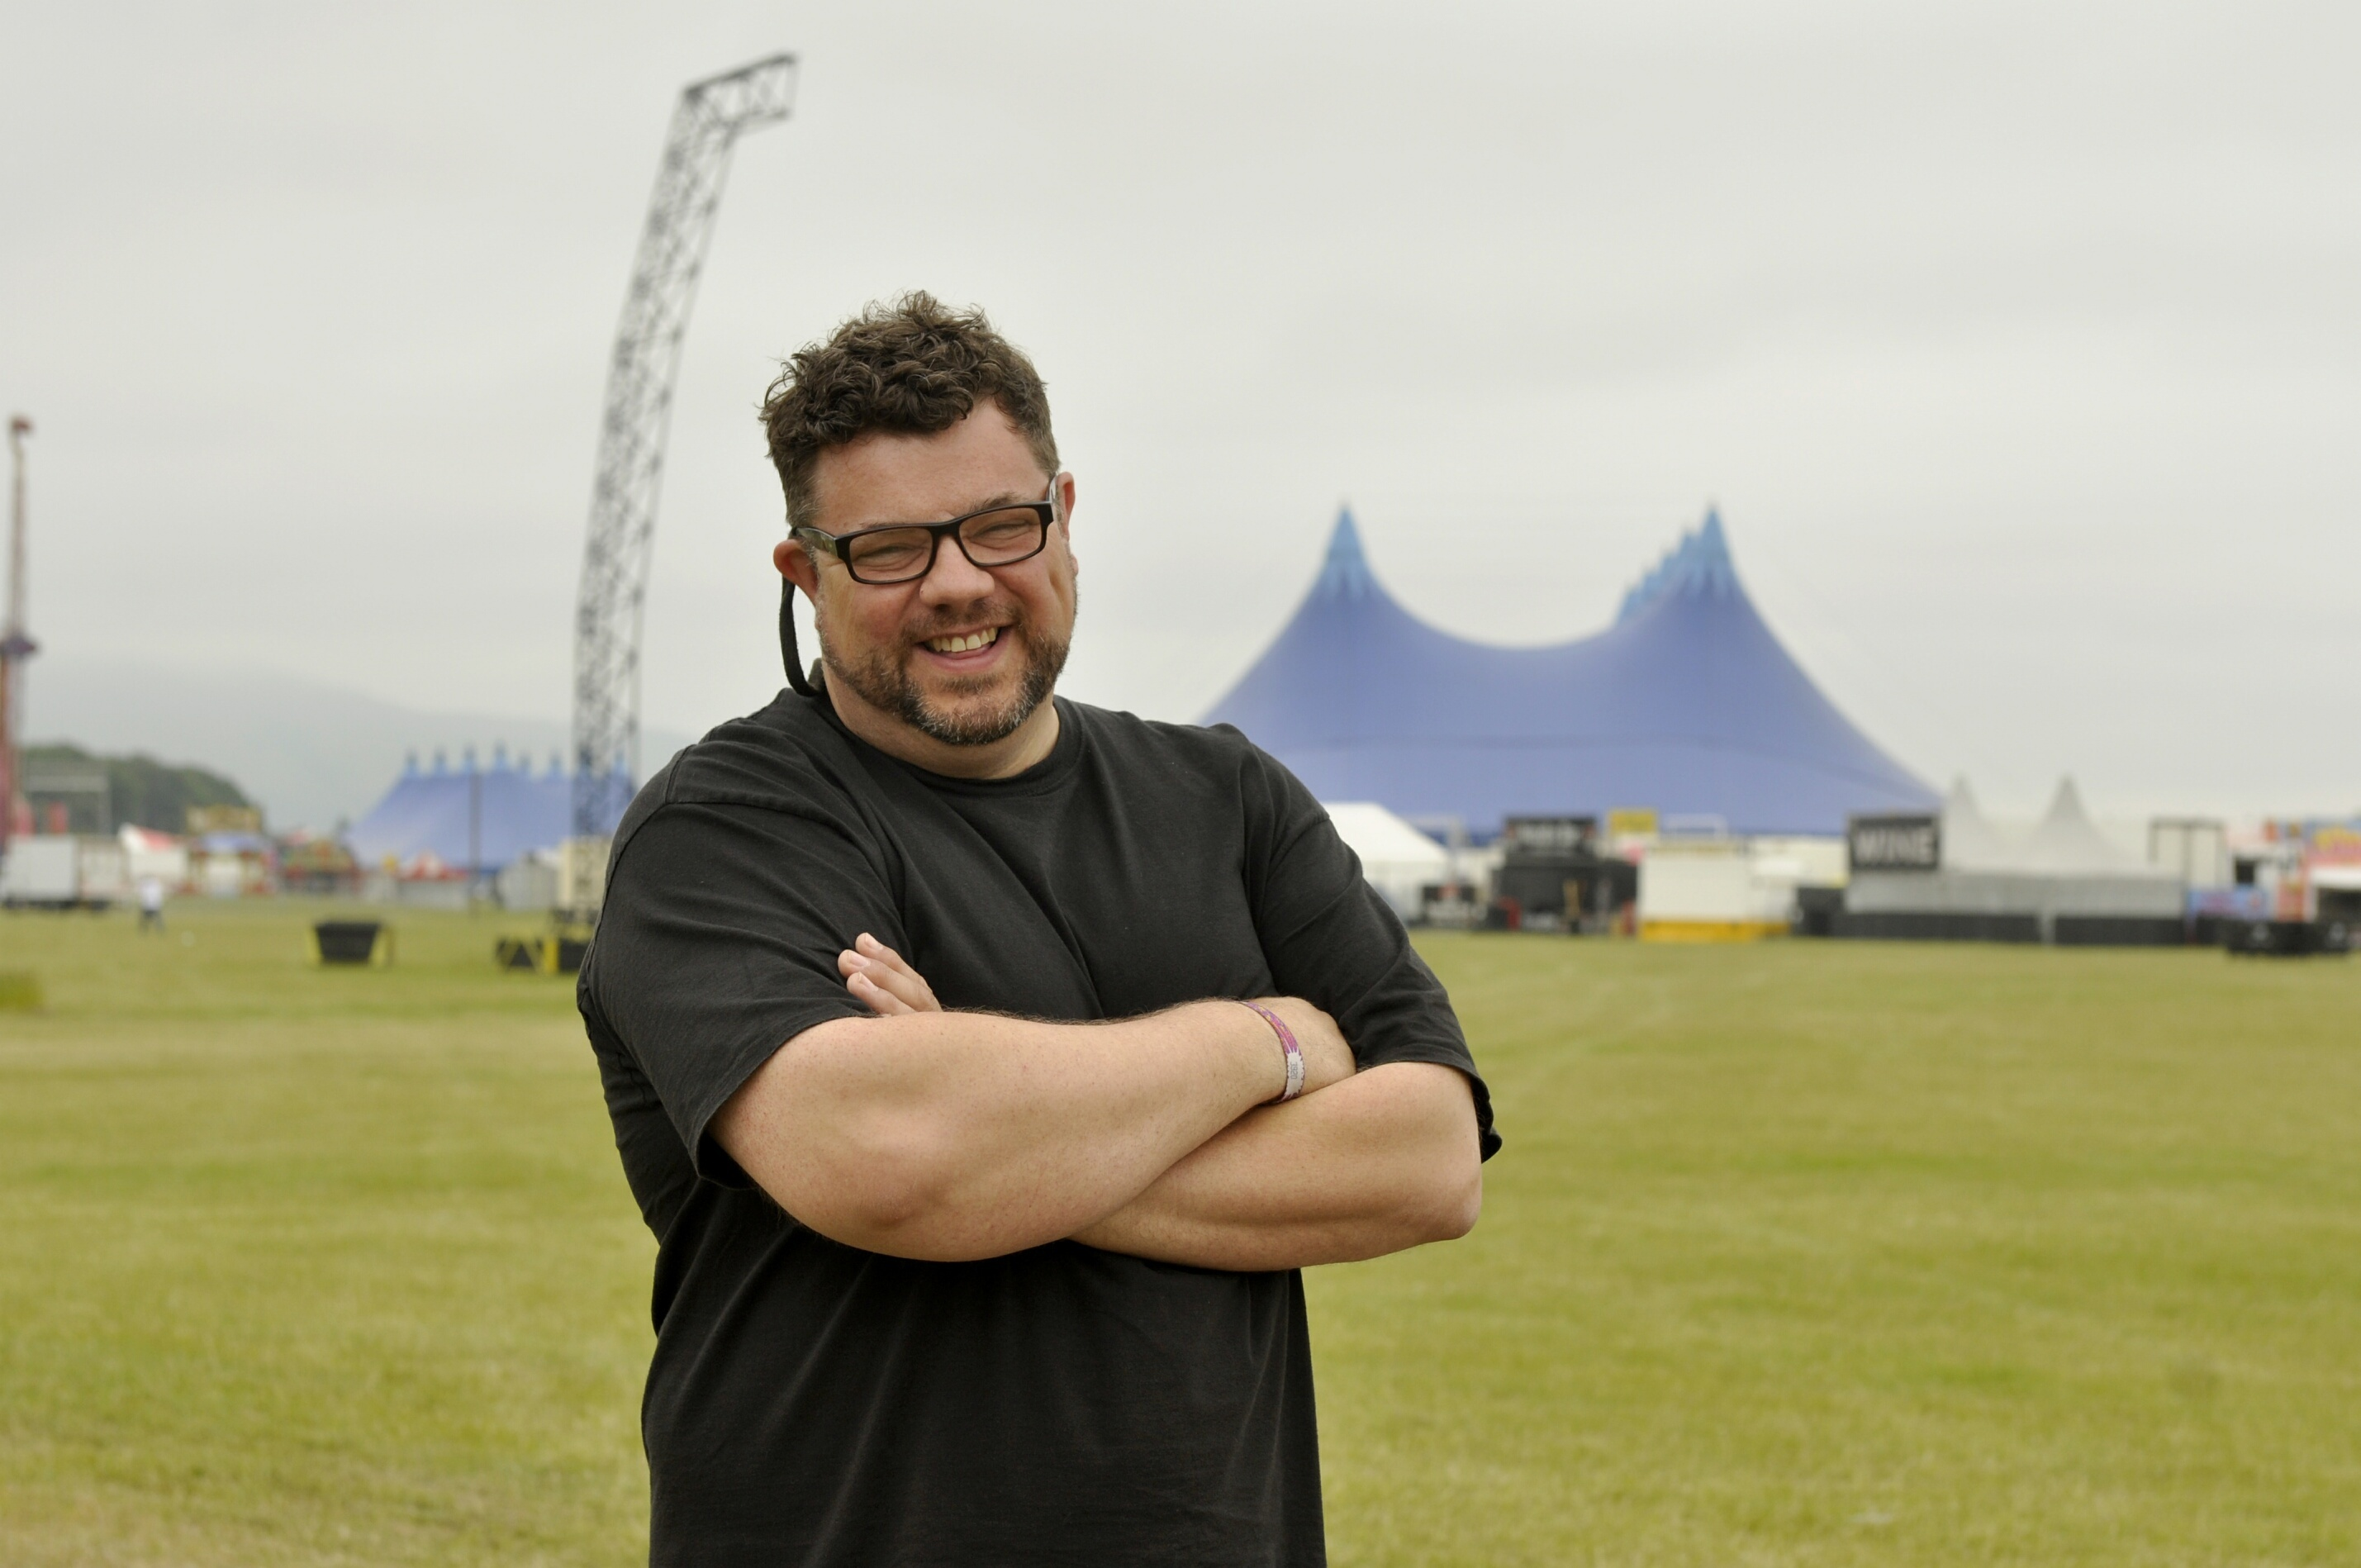 Colin Rodger, head of event management for DF Concerts.